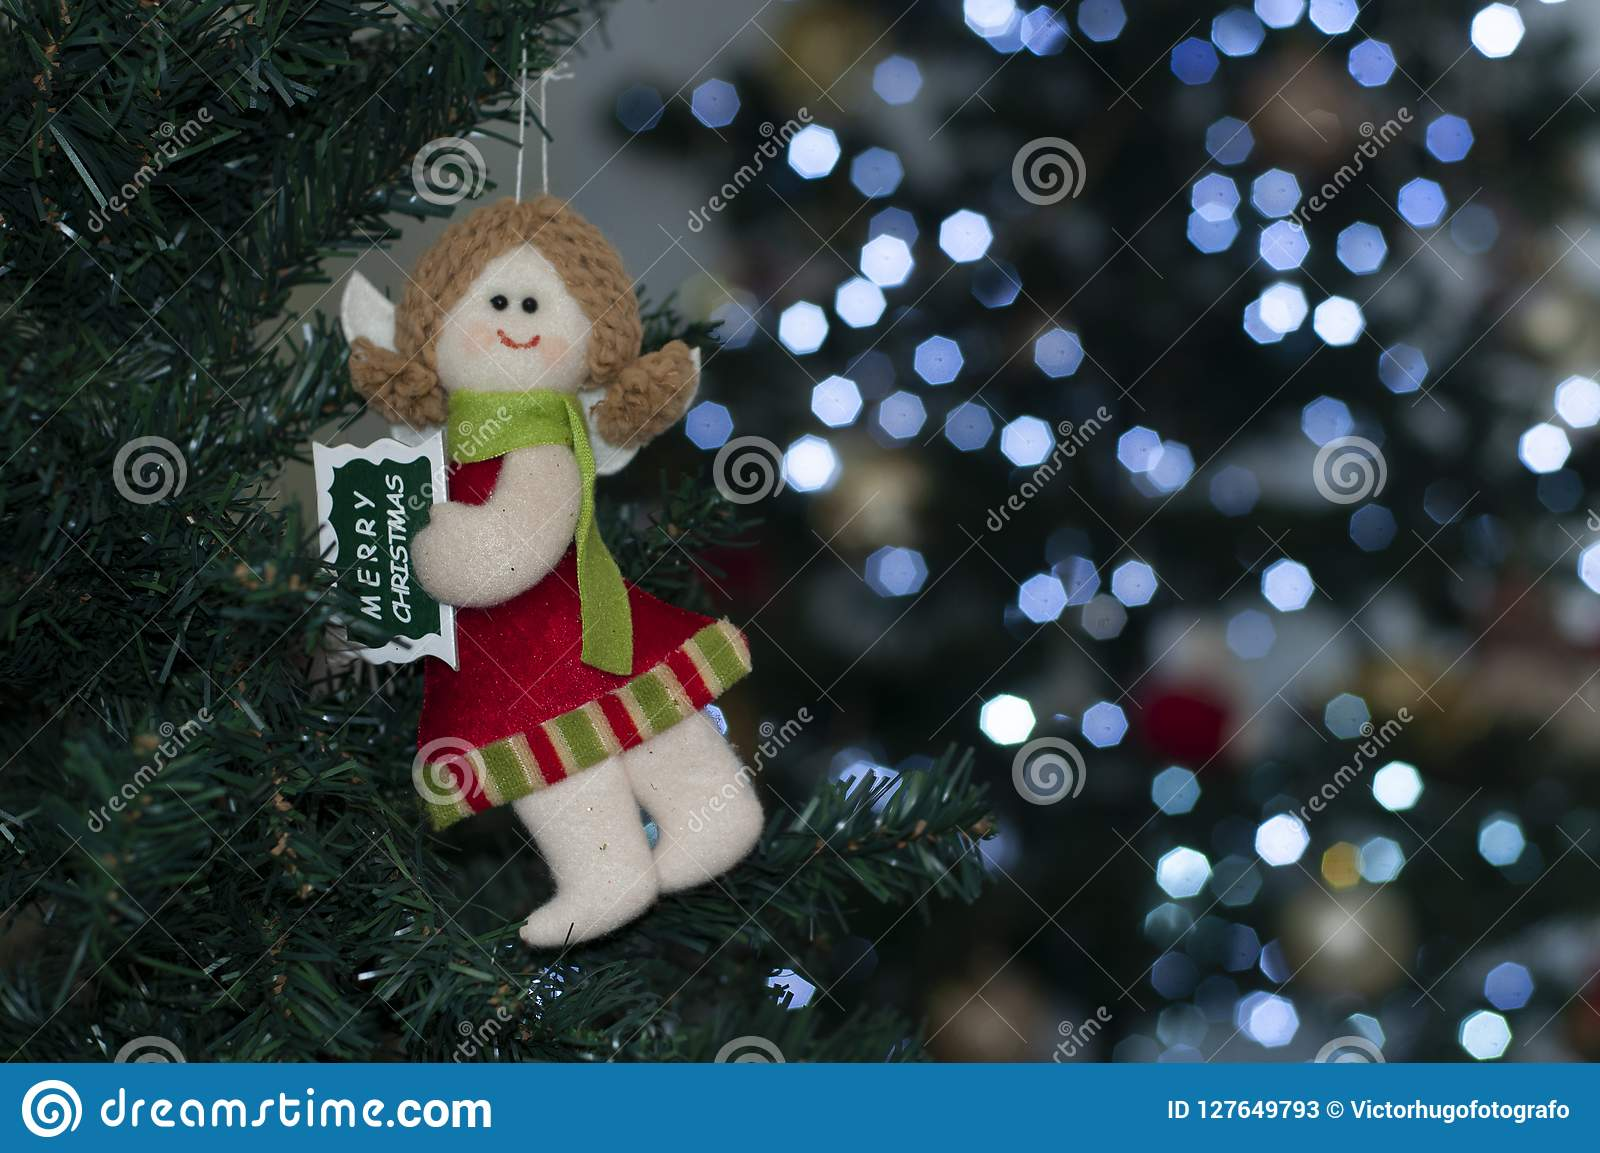 Merry Christmas Angel On The Tree With Space To Write Christmas ...